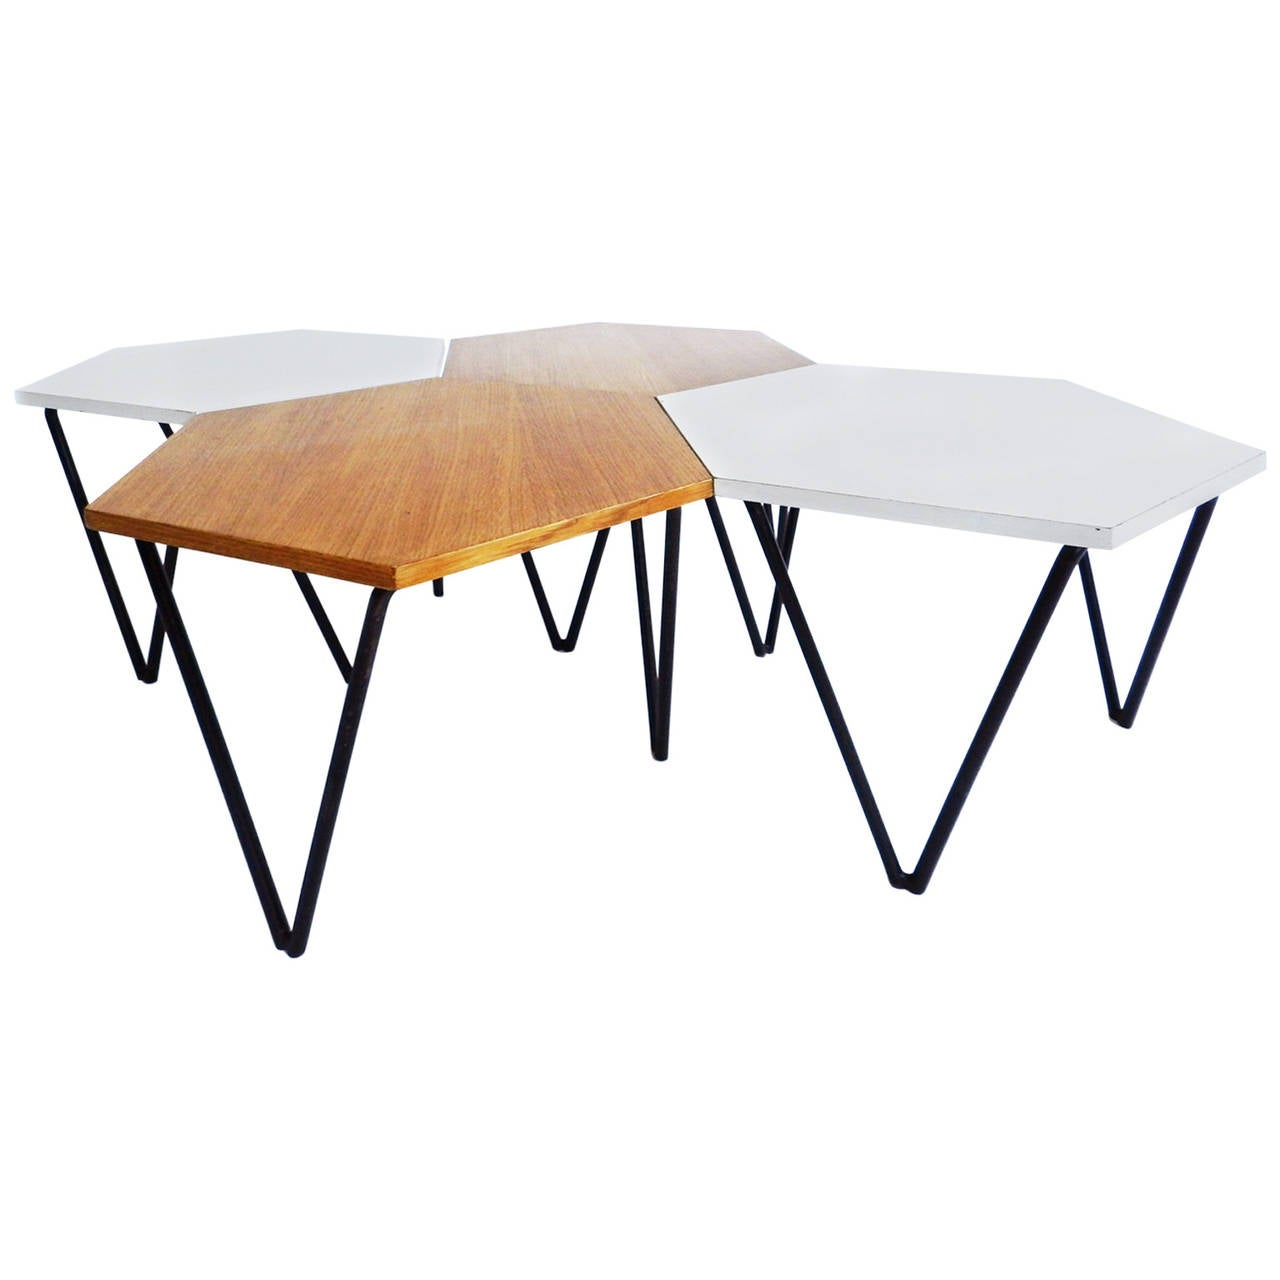 Set of 4 Gio Ponti Laminated and Wood Modular Coffee Tables for ISA 1